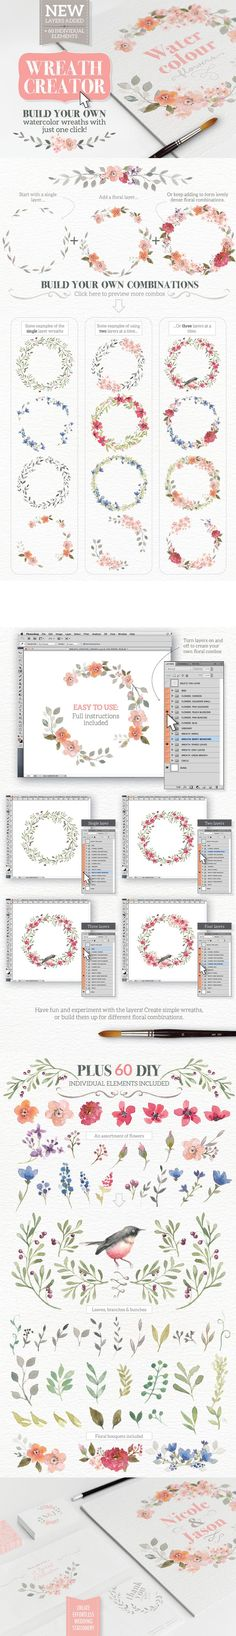 The Essential, Creative Design Arsenal (1000s of Best-Selling Resources)   Design Cuts